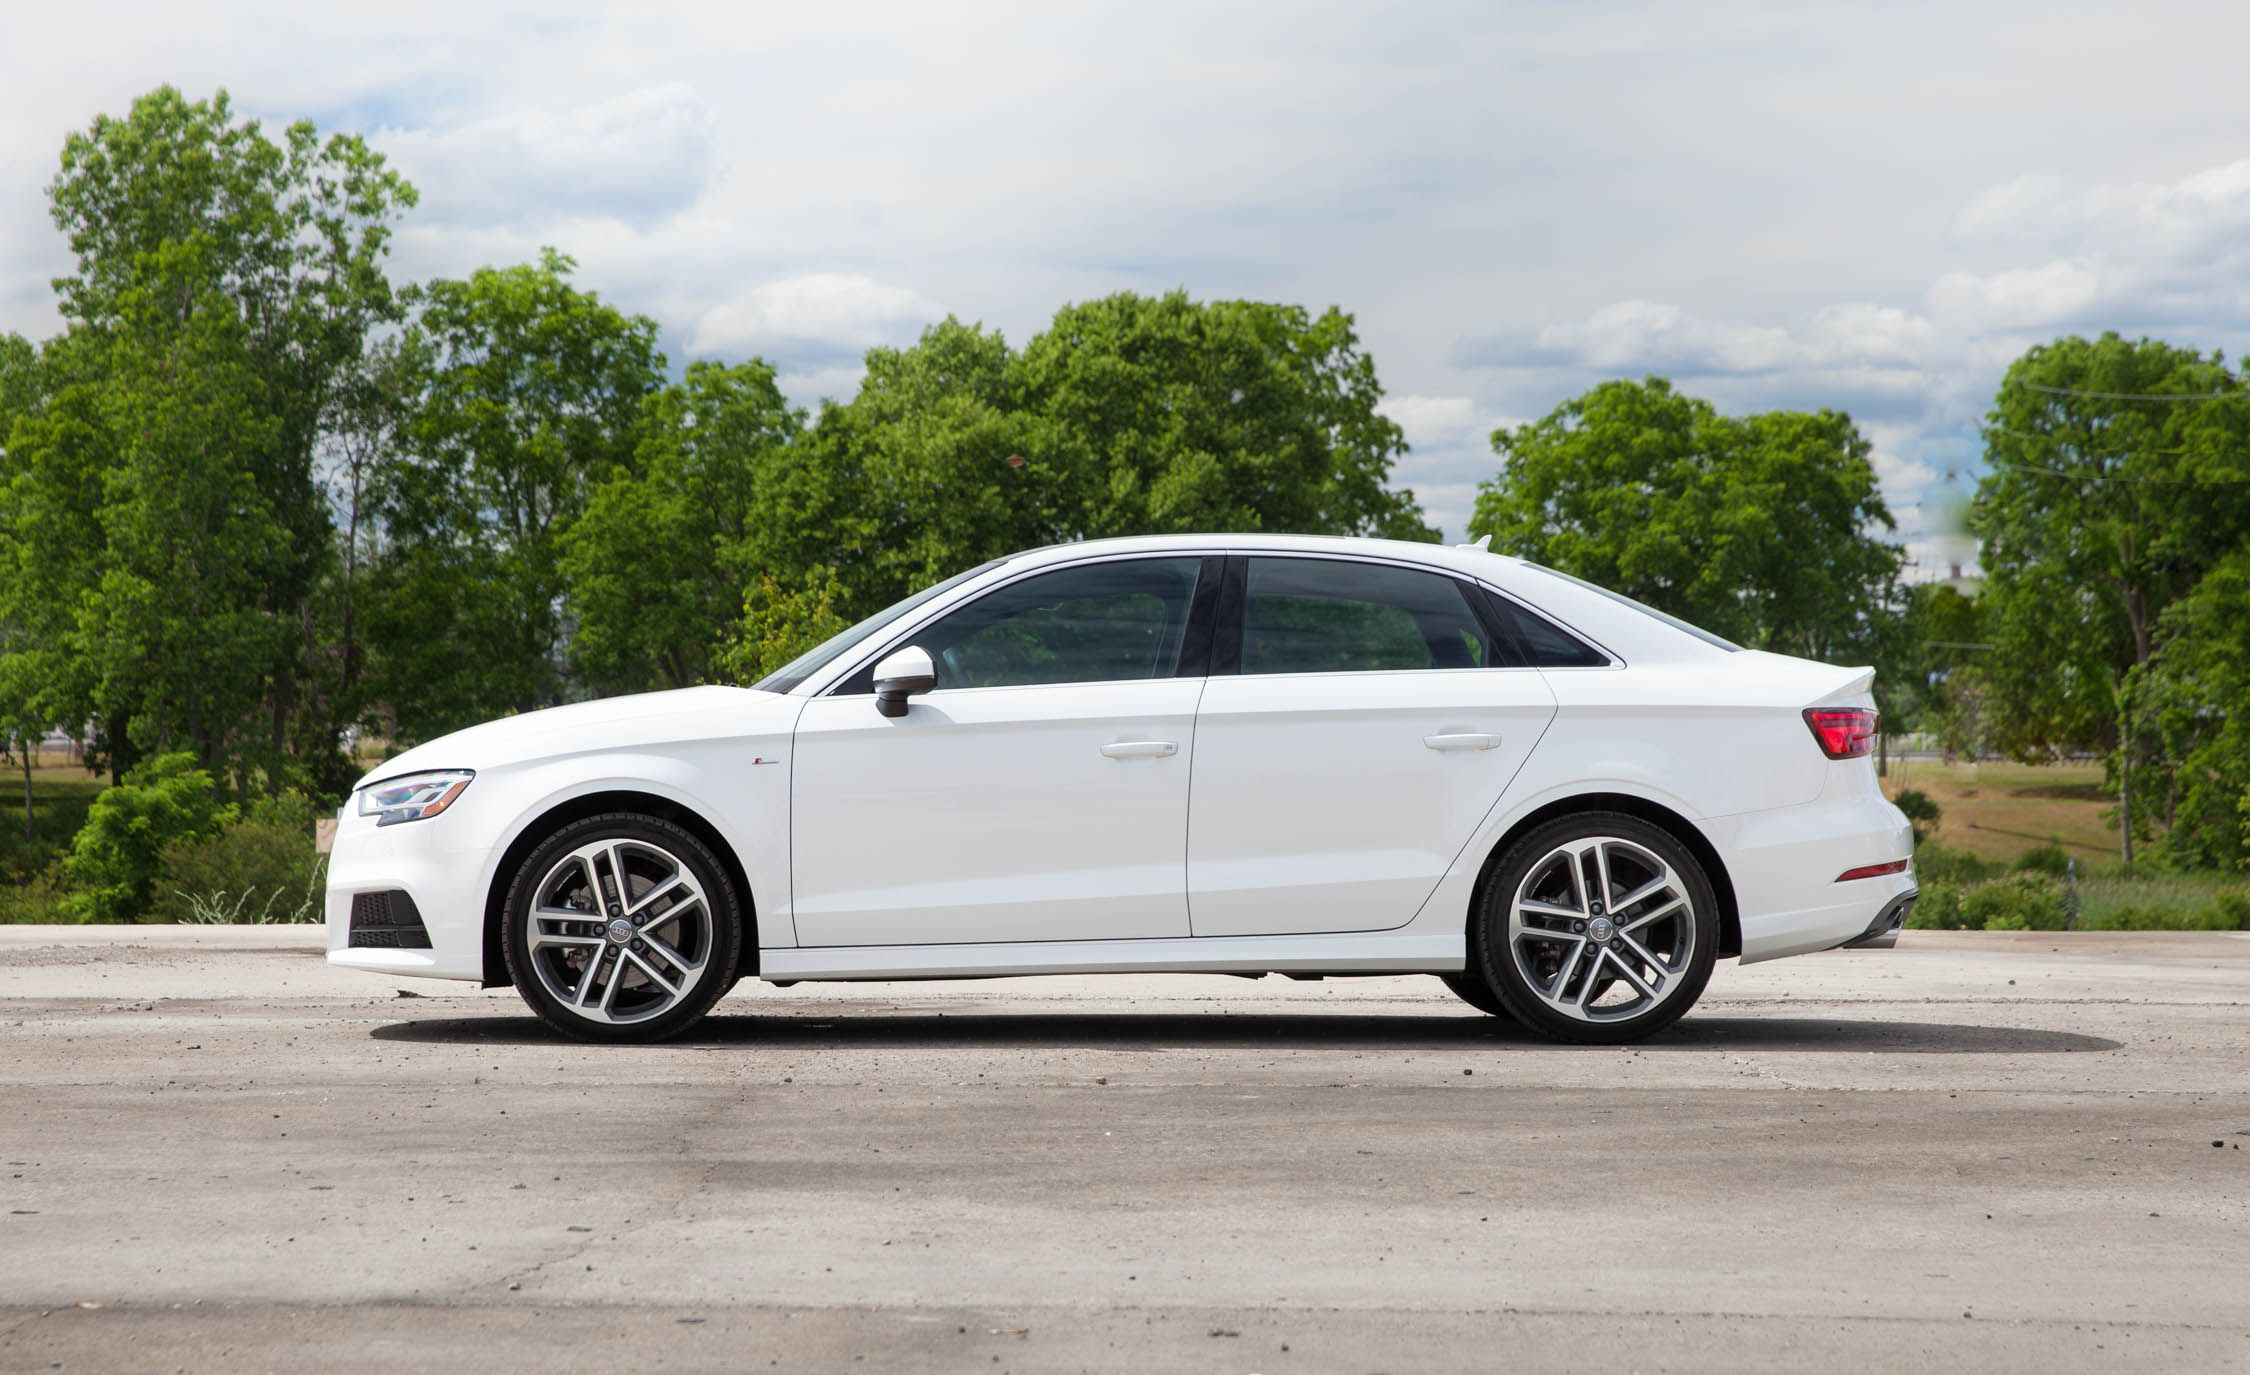 Audi A3 Reviews Audi A3 Price s and Specs